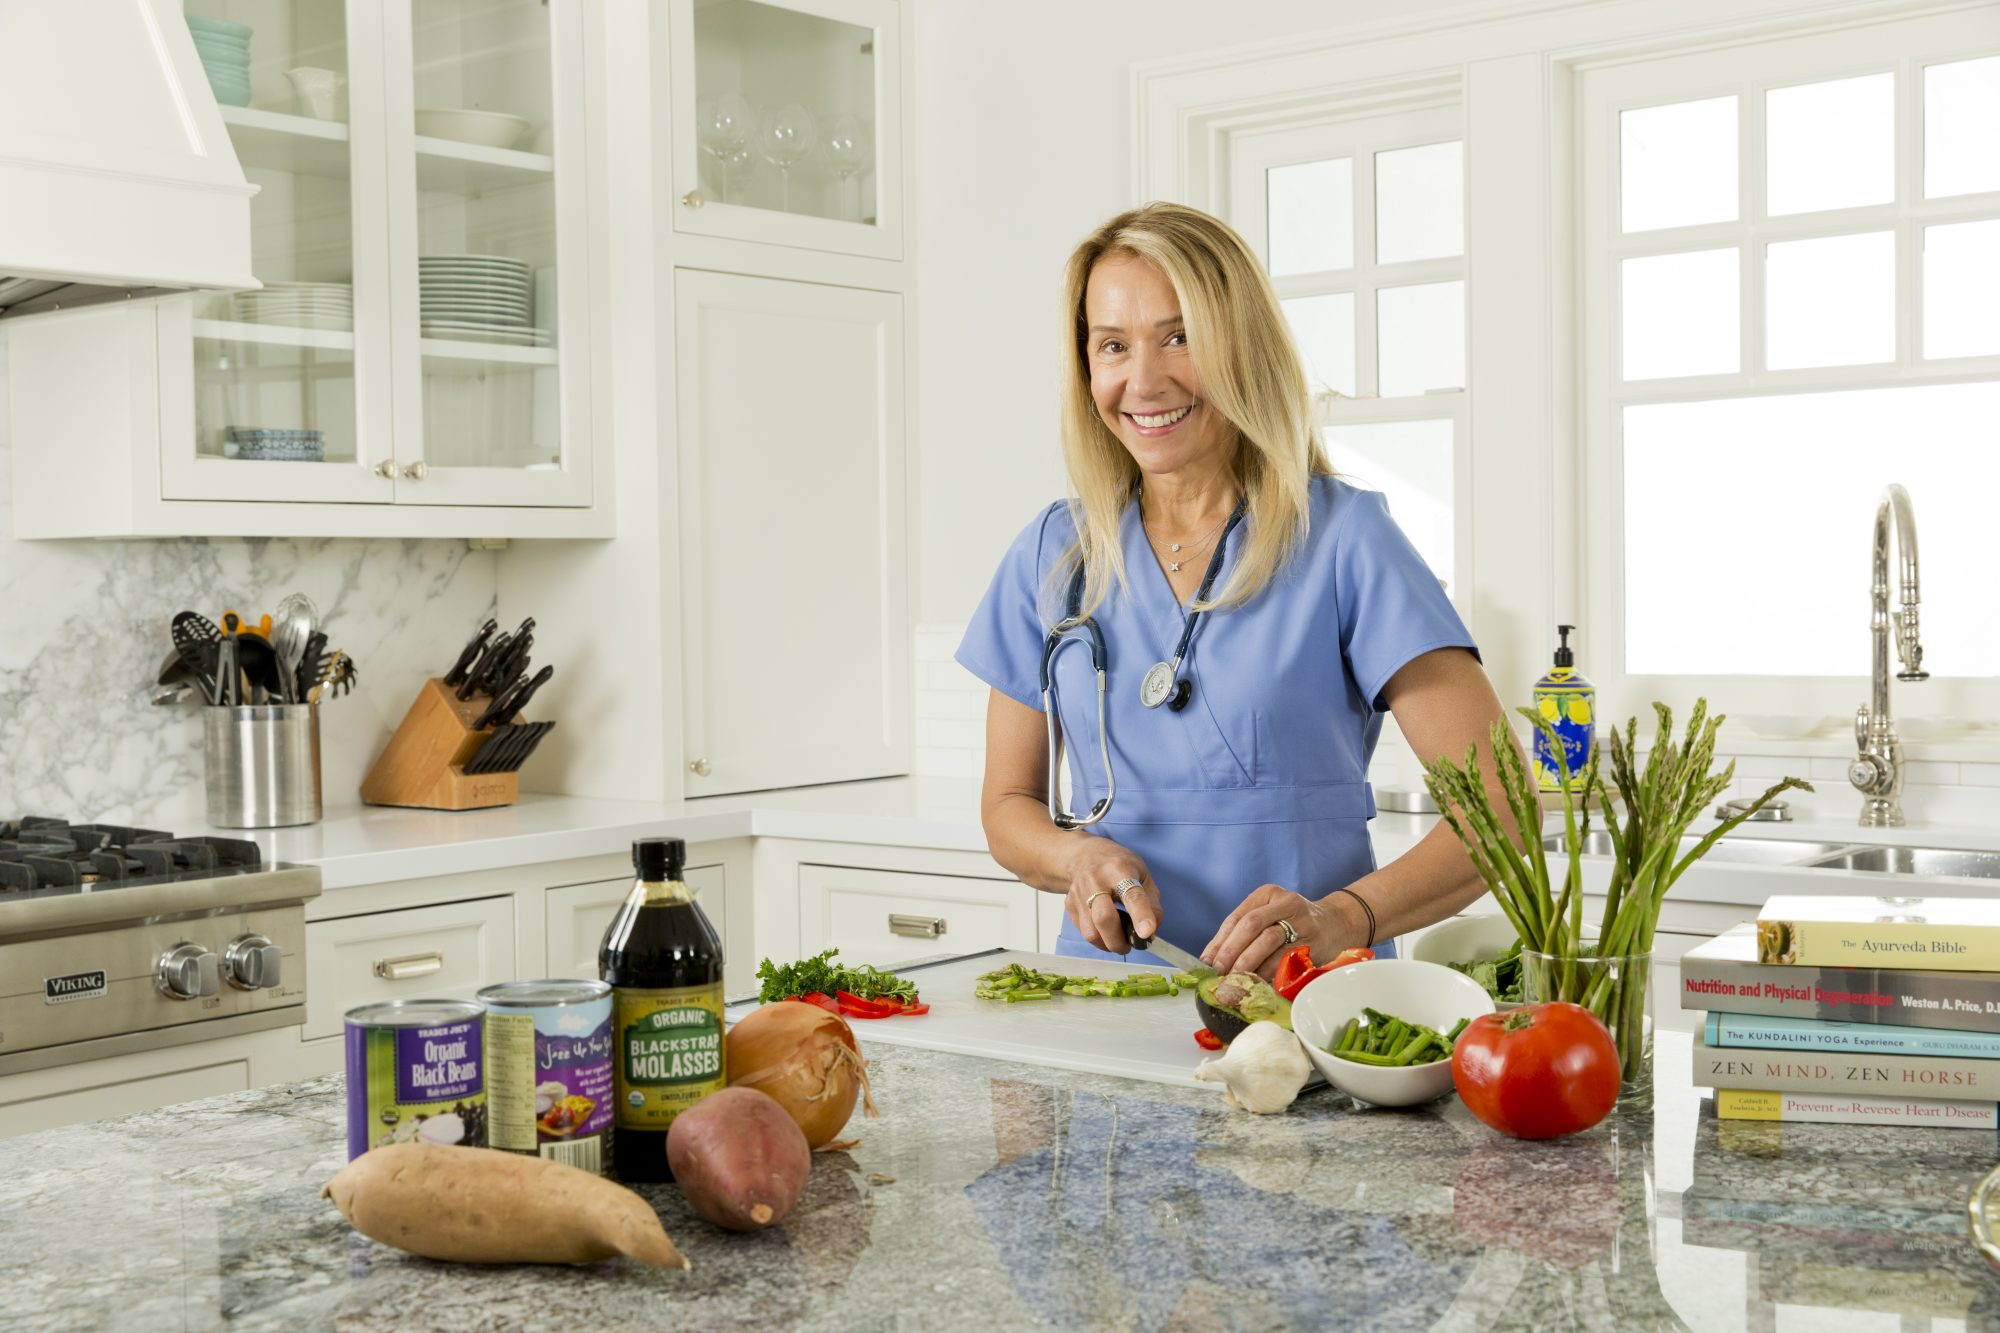 Candice Rosen Health Counselor And Registered Nurse Pancreatic